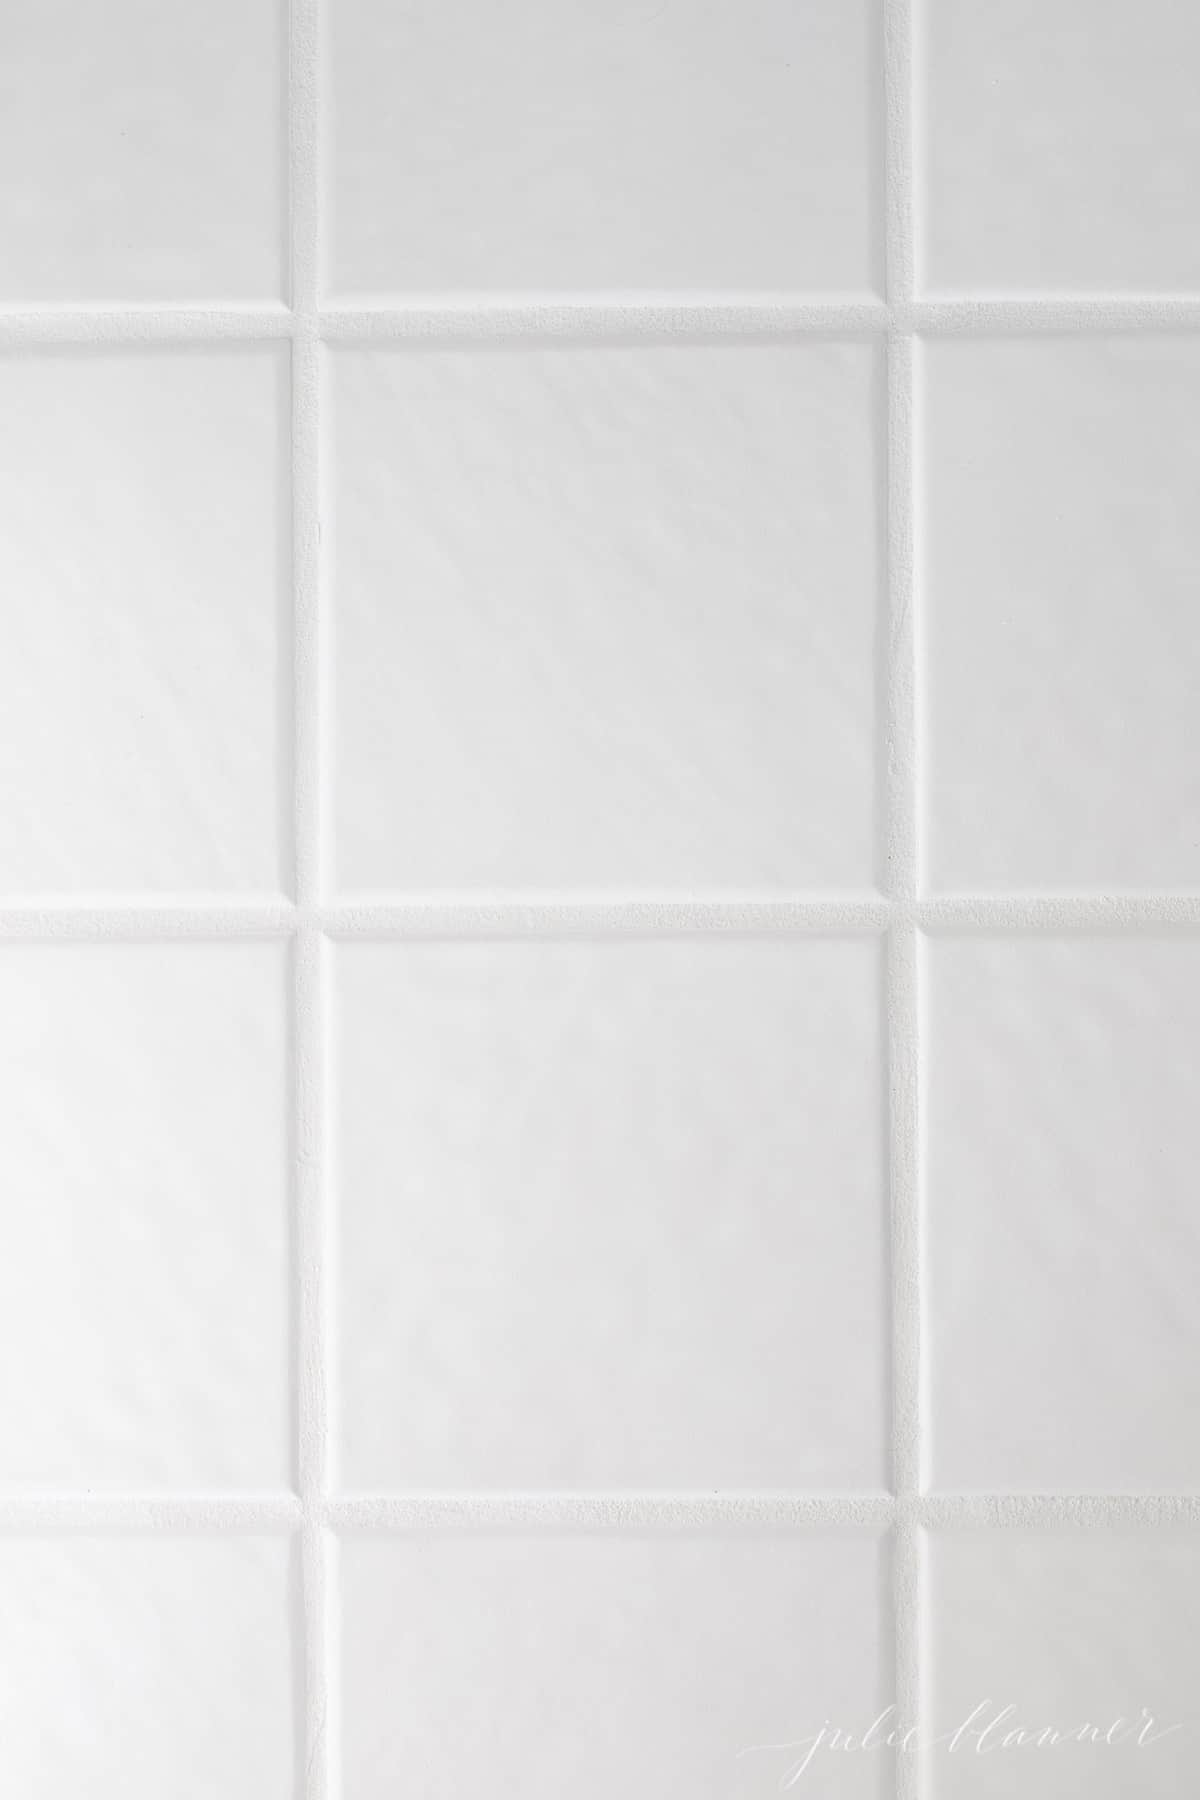 white tile and grout using grout refresh